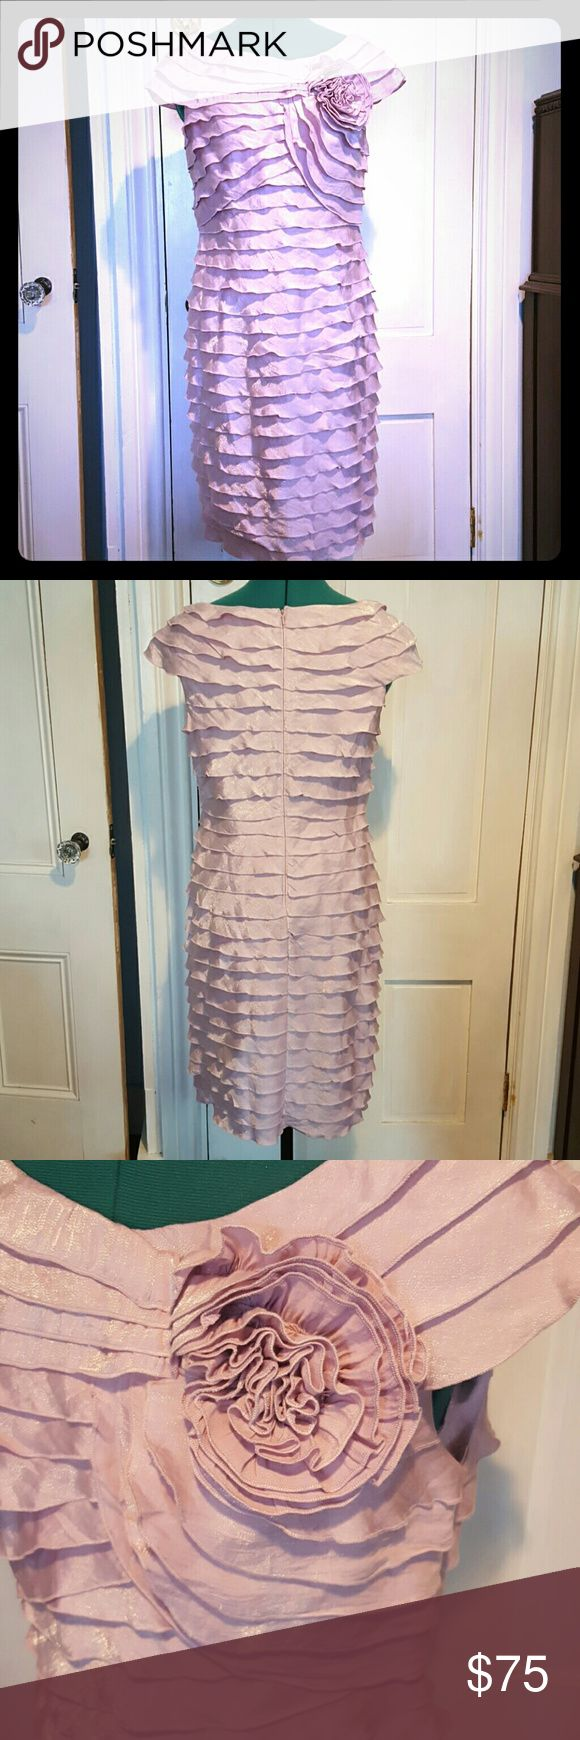 Ruffled cocktail dress Beautiful lavender cocktail dress. Knee length, like new condition. Fits true to size. Adrianna Papell Dresses